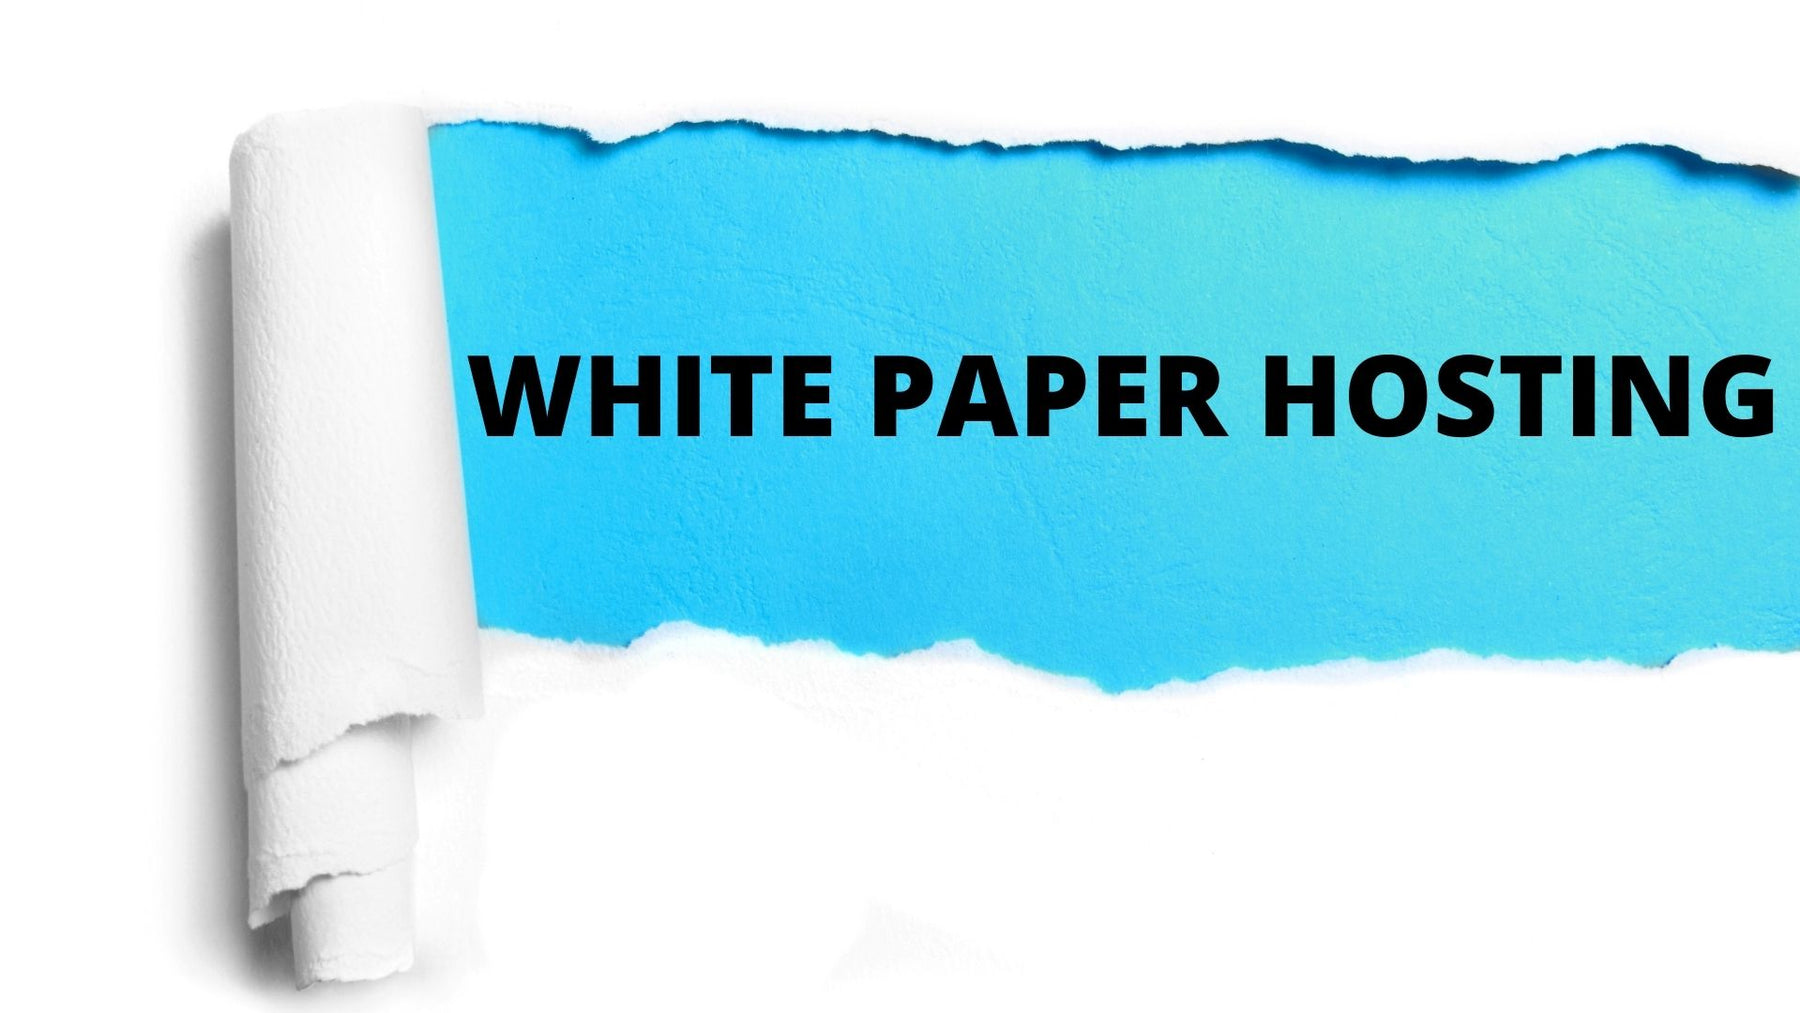 The Pros and Cons of Whitepaper Hosting